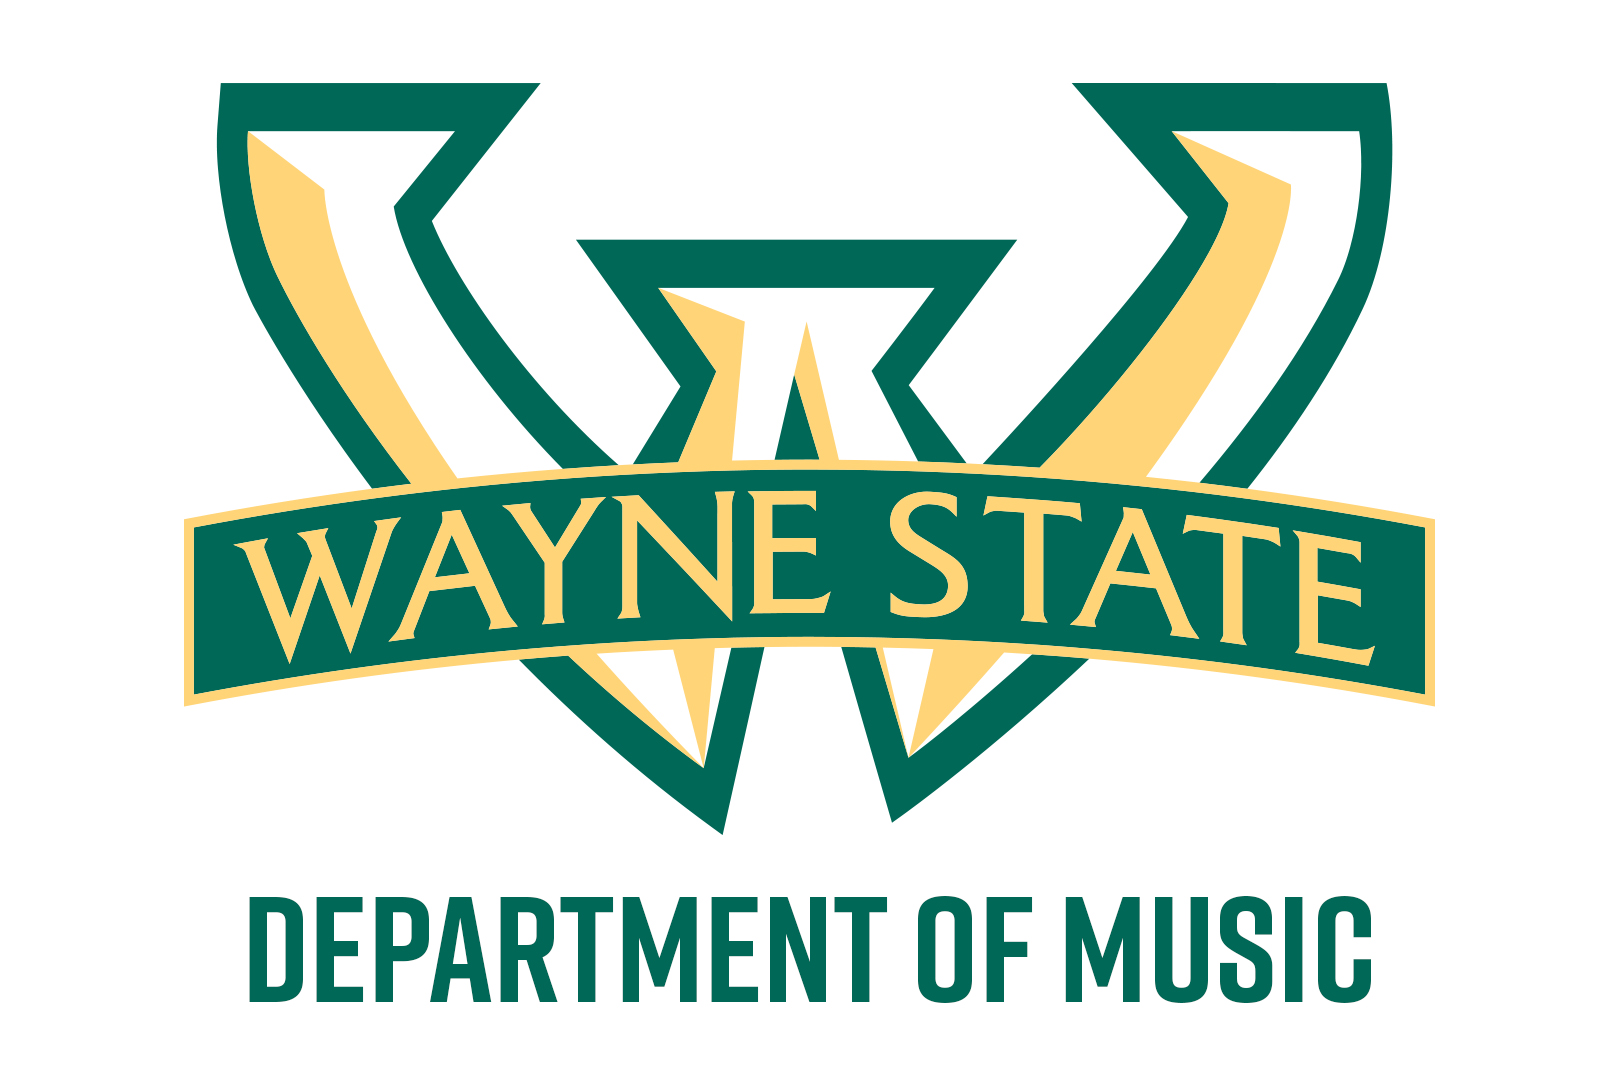 WSU-department-of-music.jpg